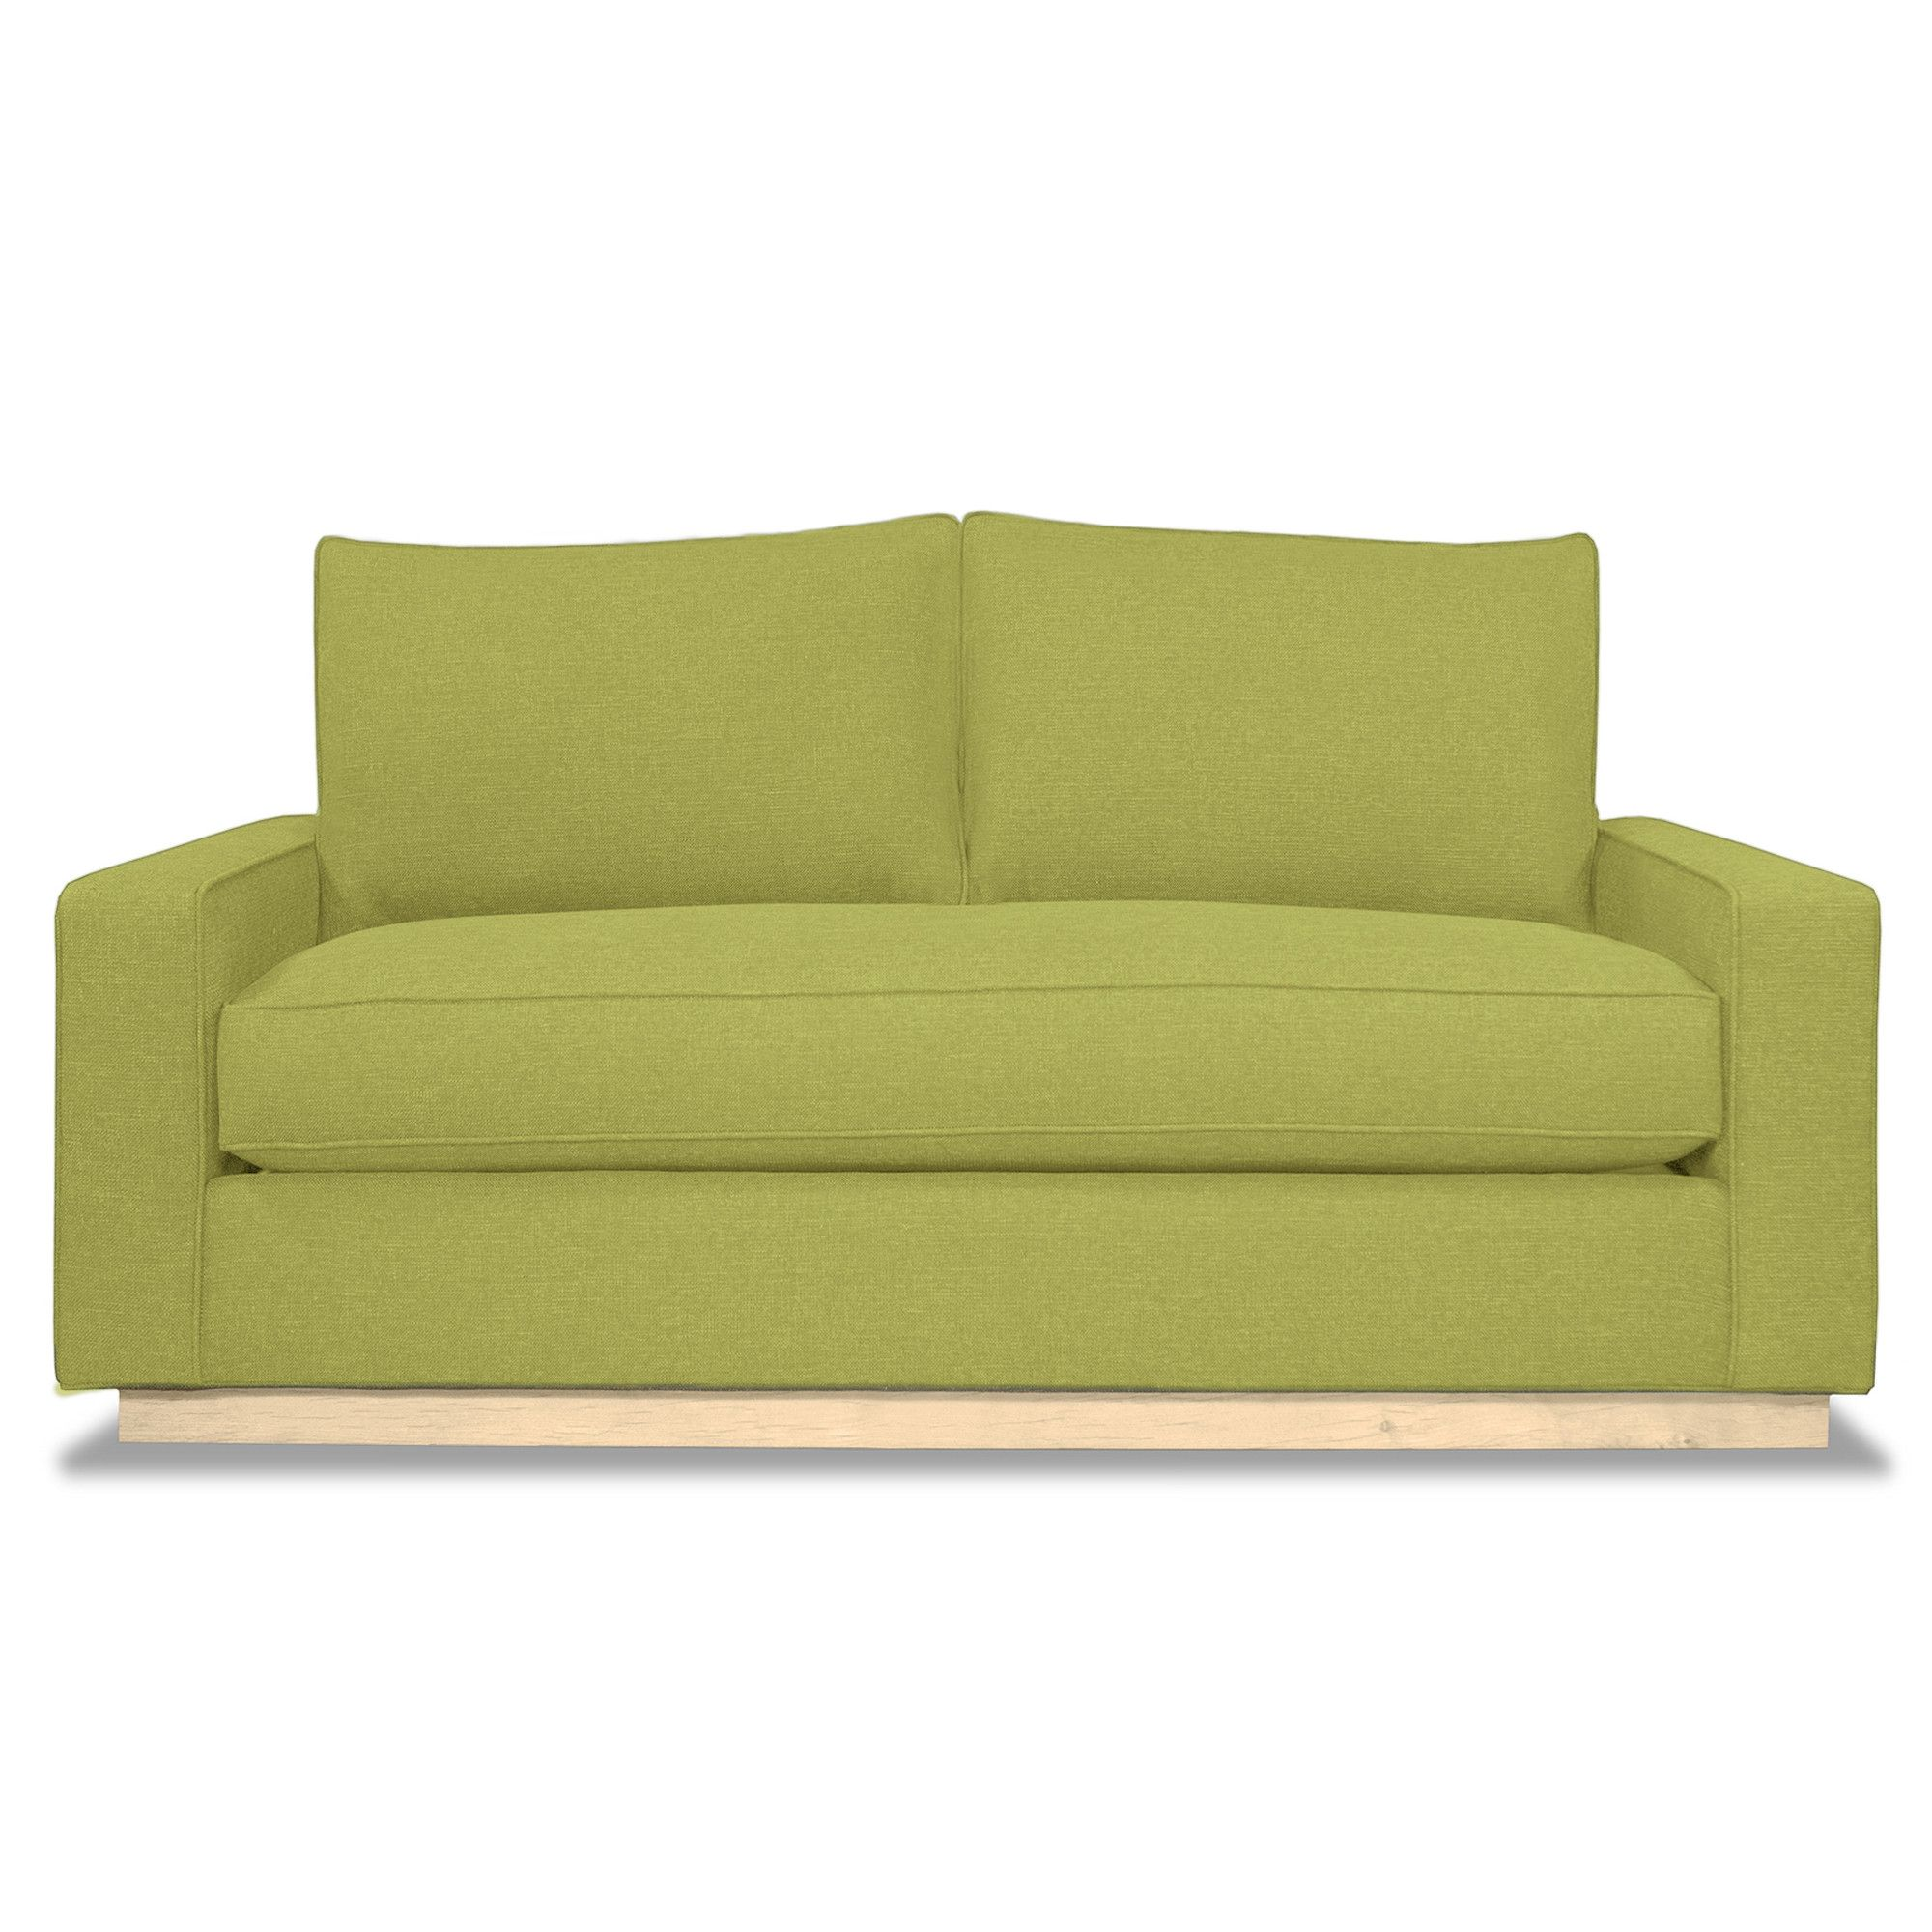 Harper Apartment Size Sofa NATURAL WOOD BASE- CHOICE OF